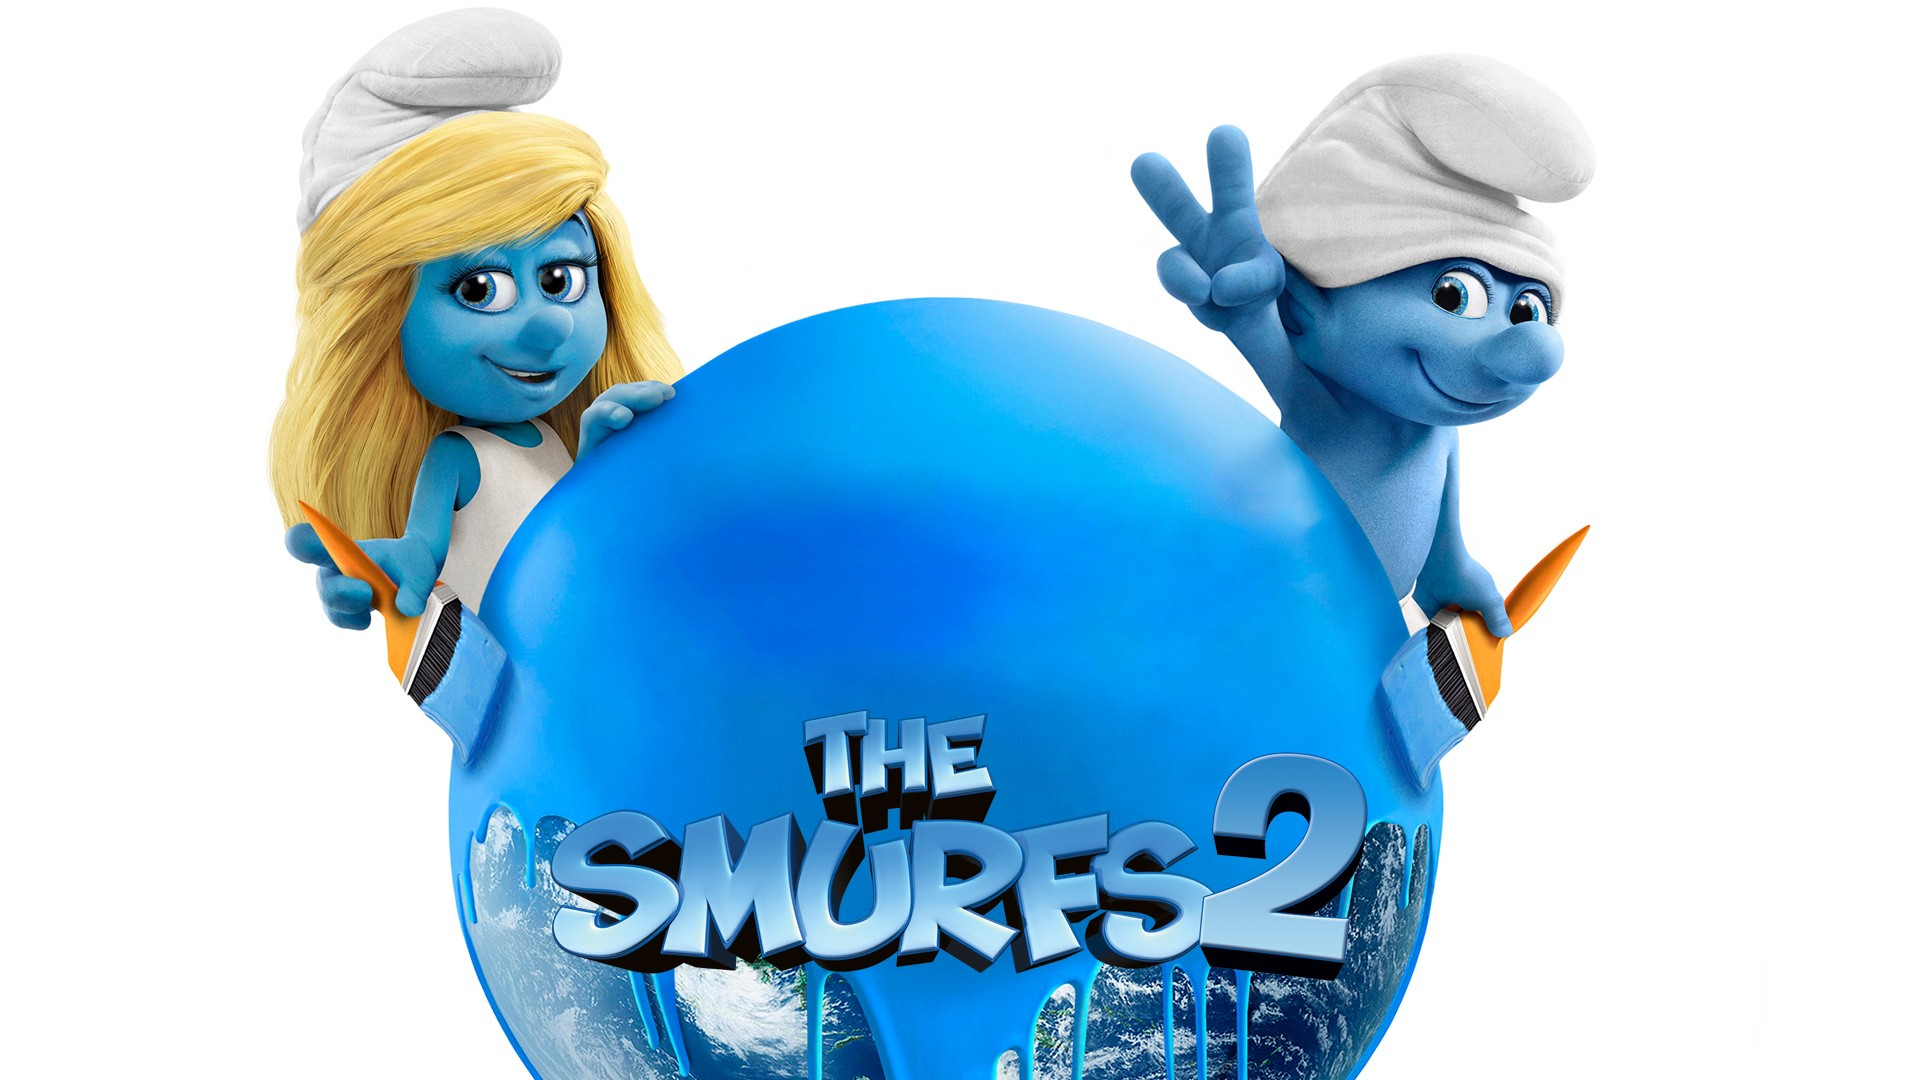 3d Smurfette Wallpapers The Smurfs 2 Wallpapers Hd Wallpapers Id 12541